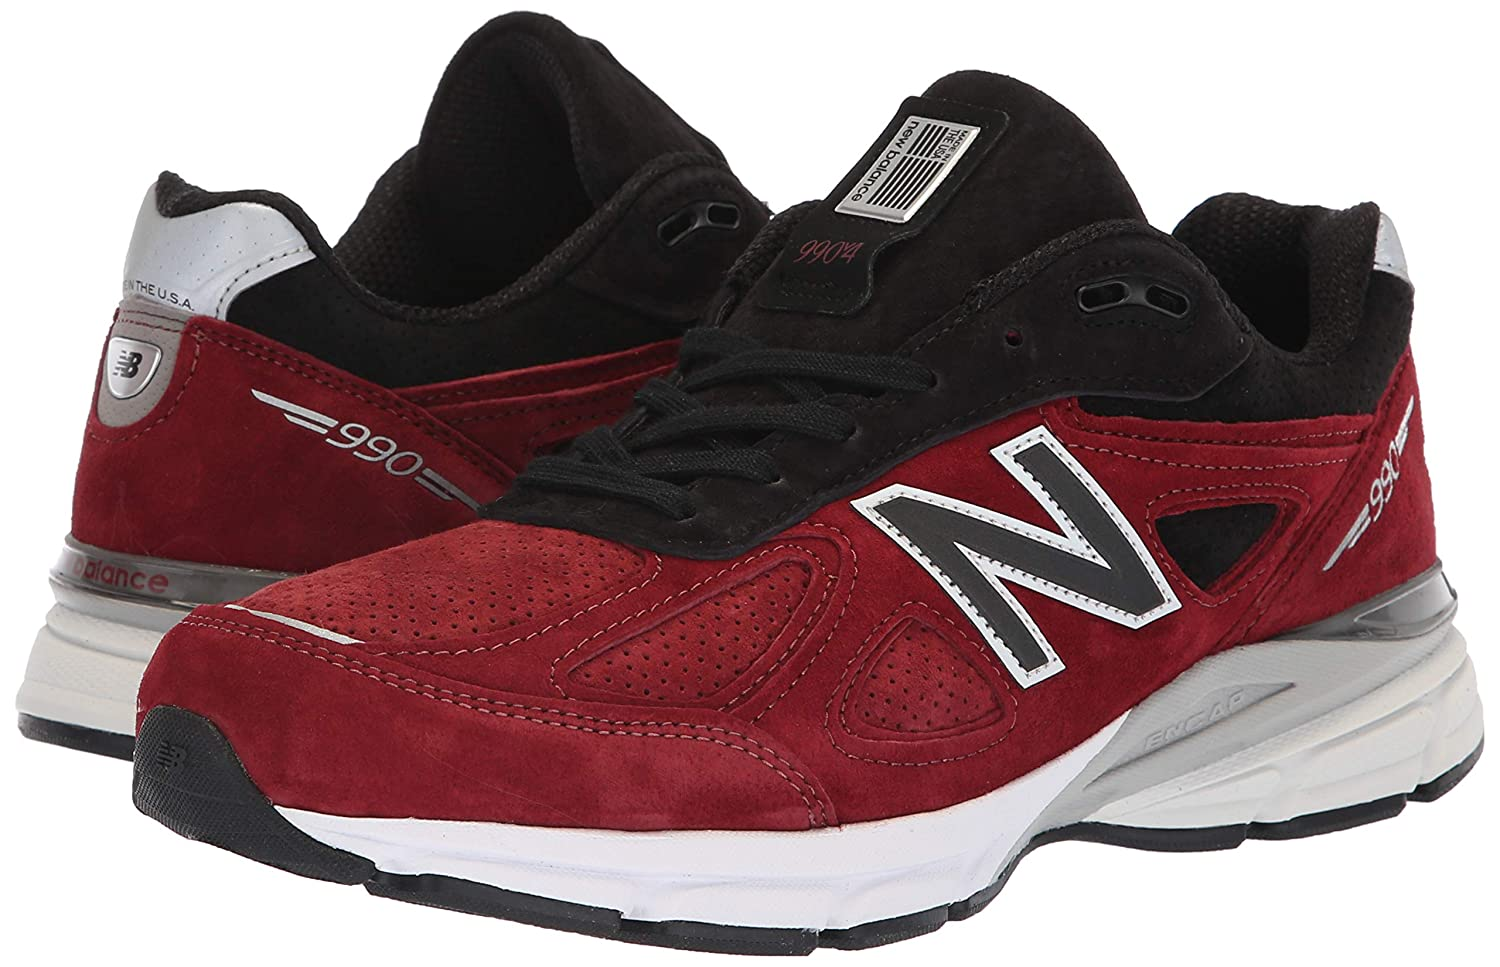 New-Balance-990-990v4-Classicc-Retro-Fashion-Sneaker-Made-in-USA thumbnail 93